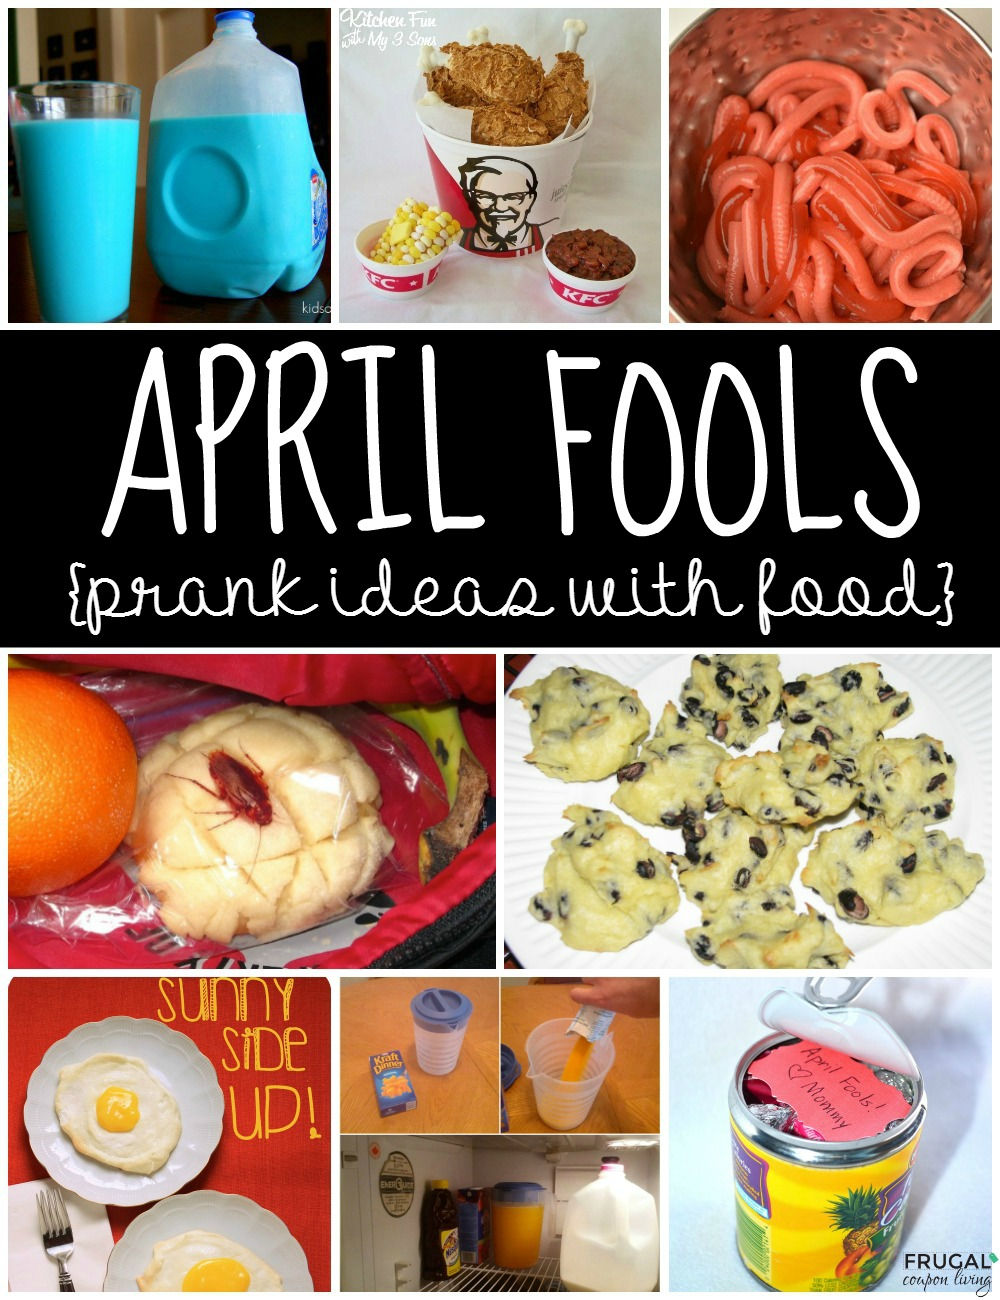 april-fools-pranks-ideas-collage-food-frugal-coupon-living